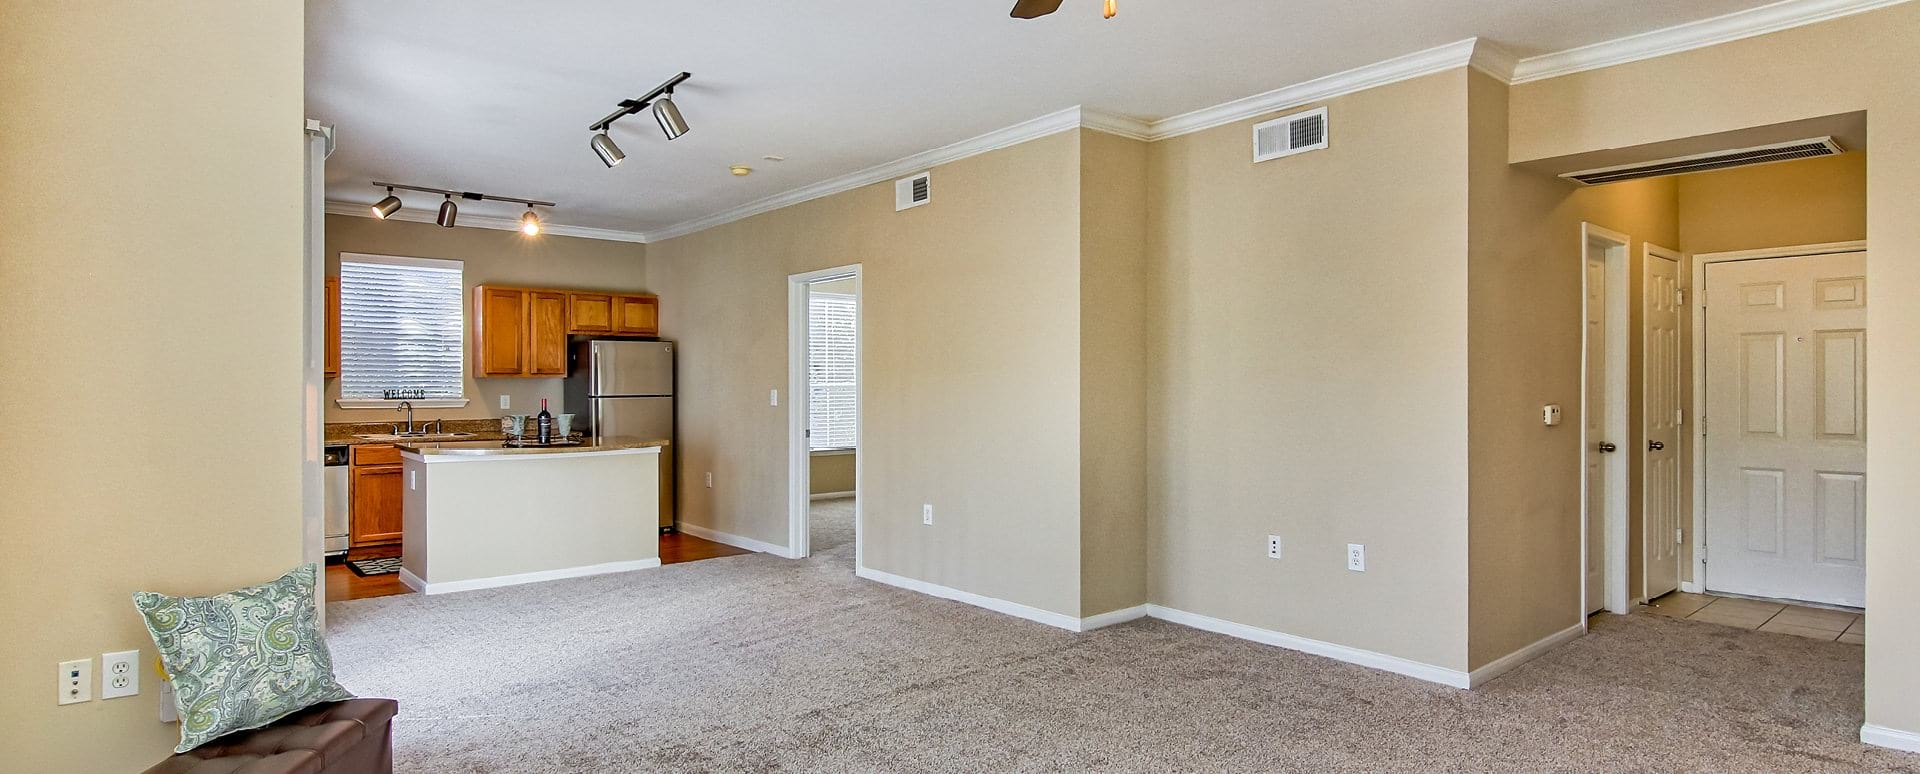 Spacious Apartment Floor Plan at The Boulevard at Deer Park